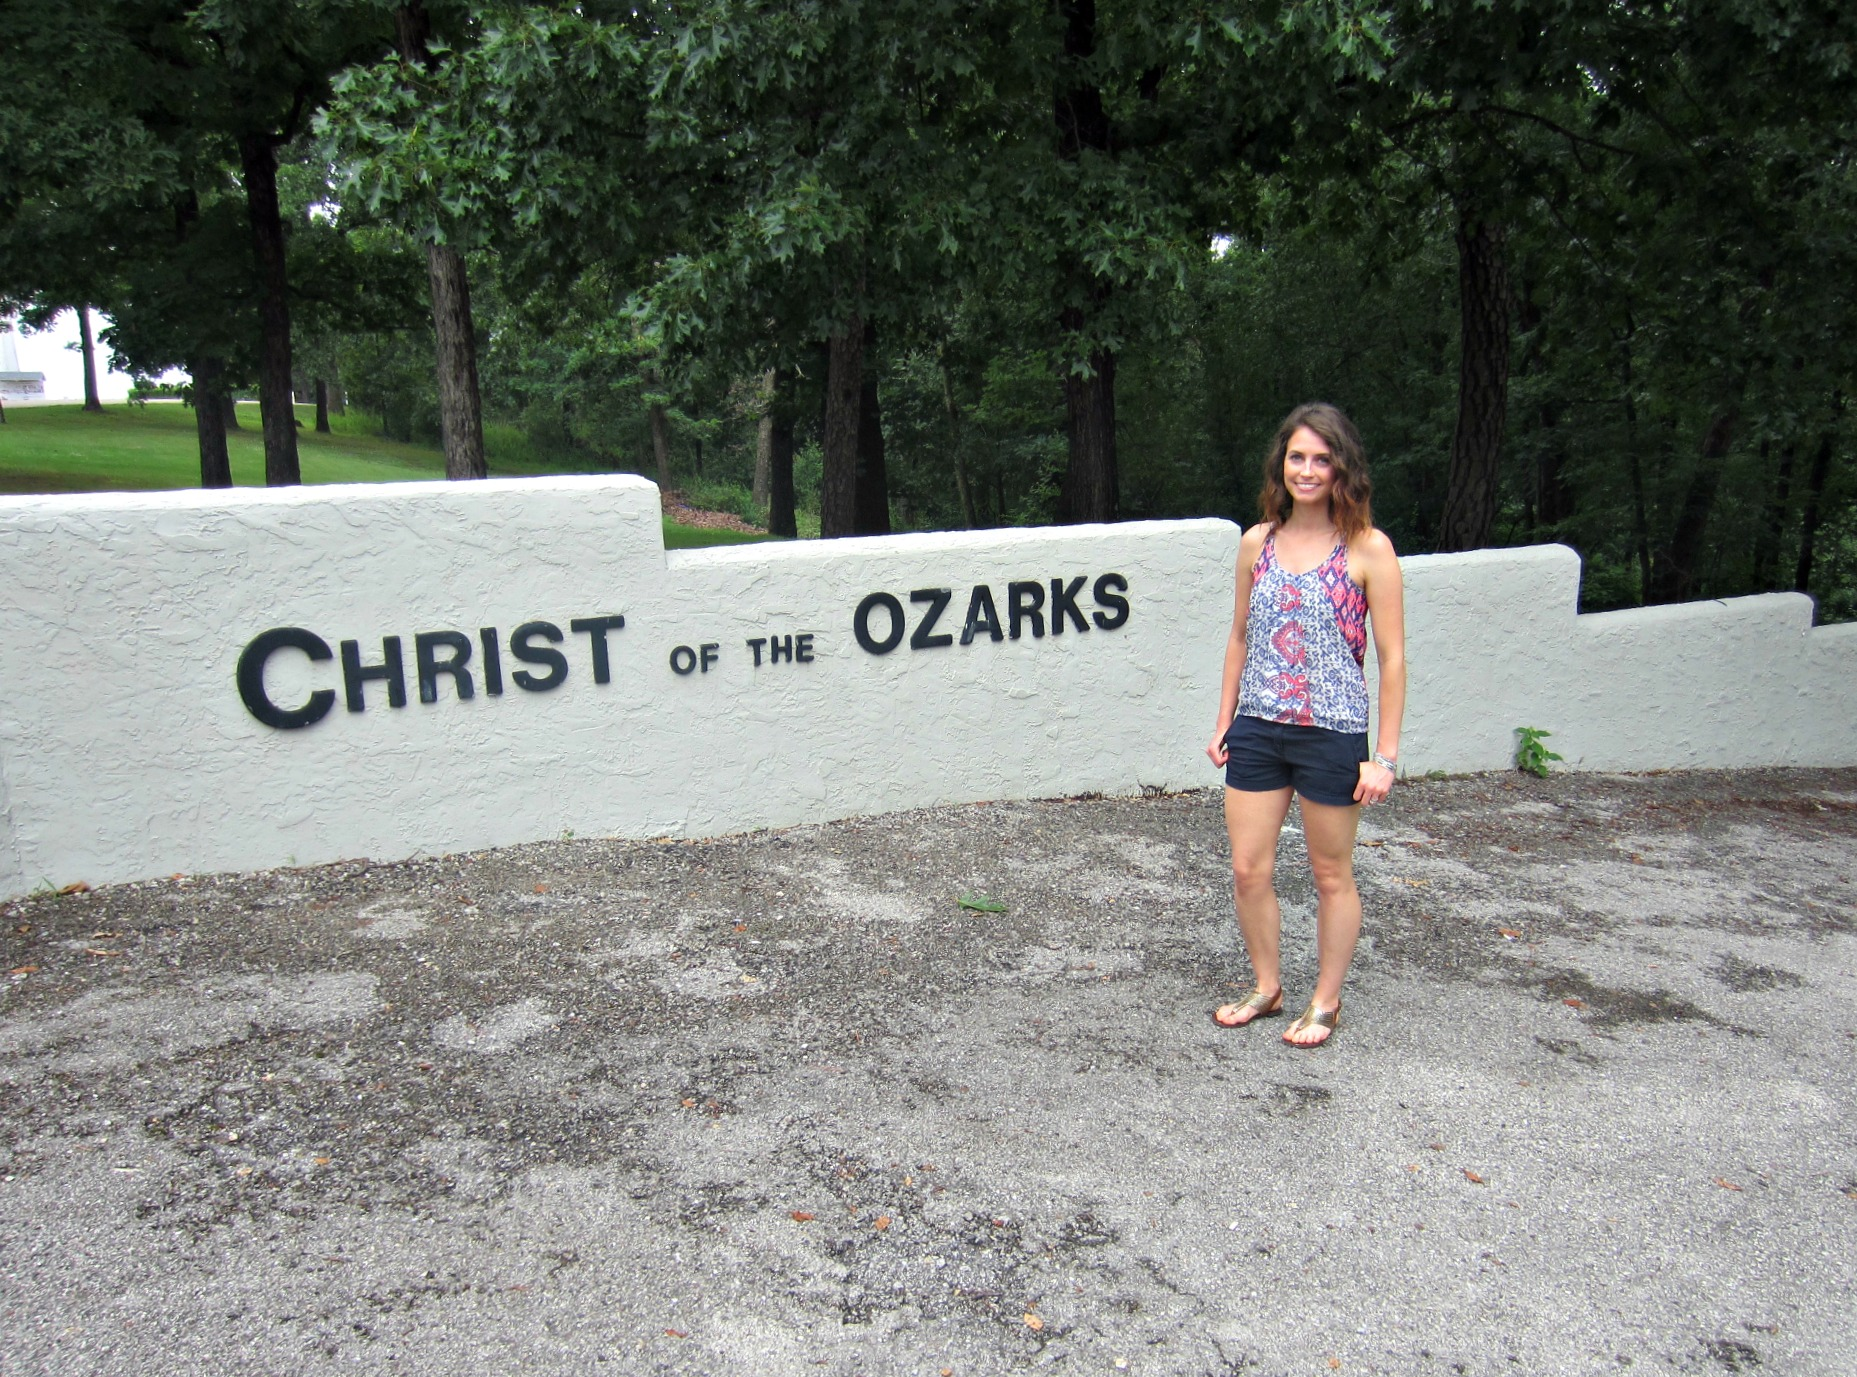 Heather at Christ of the Ozarks statue